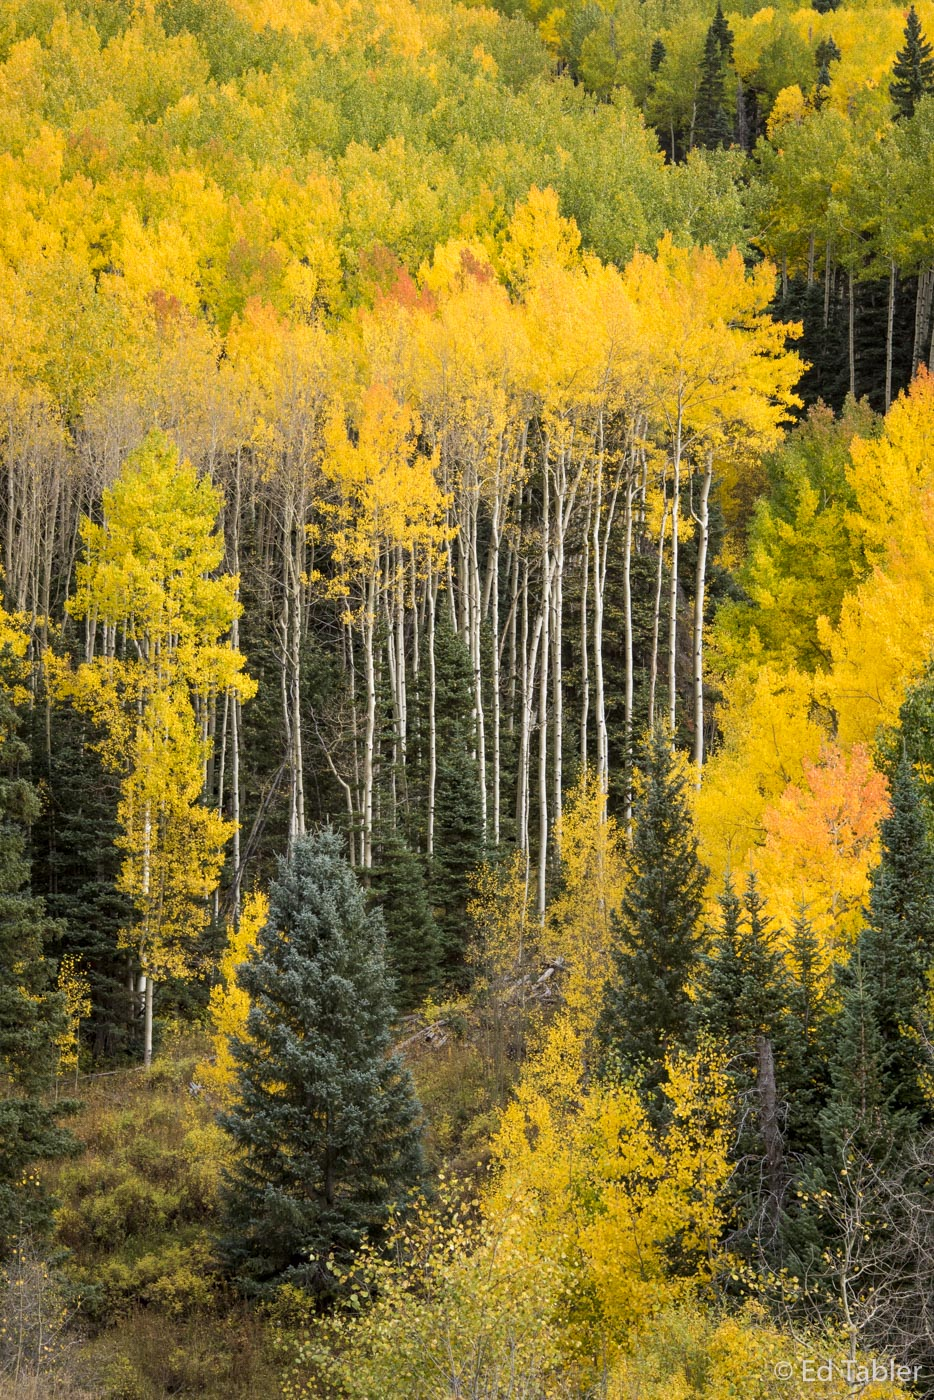 Uncompahgre National Forest, aspen, long trunks, fall, photo